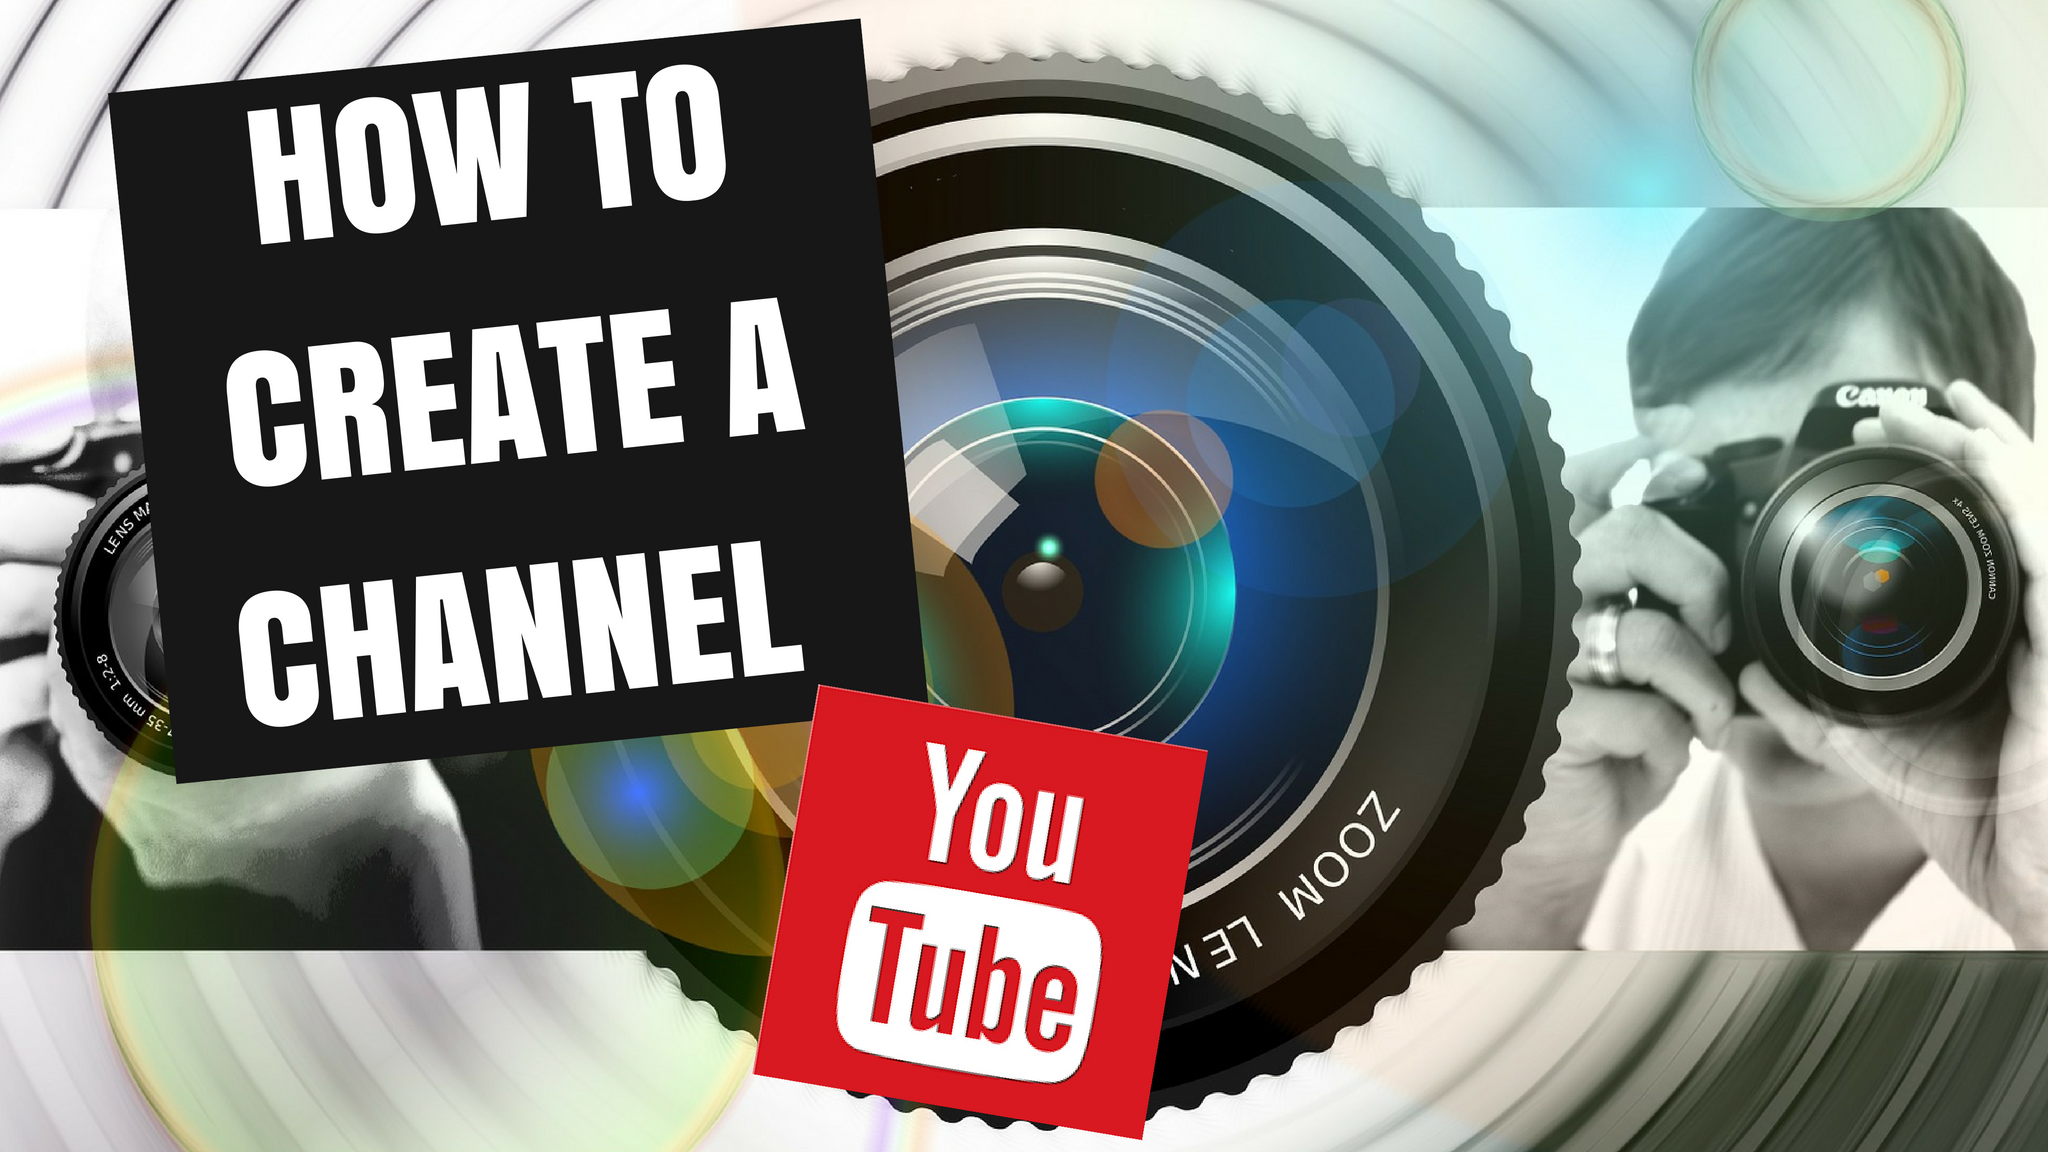 How to Create A Youtube Channel From Scratch in The Next 10 Minutes - Skillshare Free Course With Discount Code